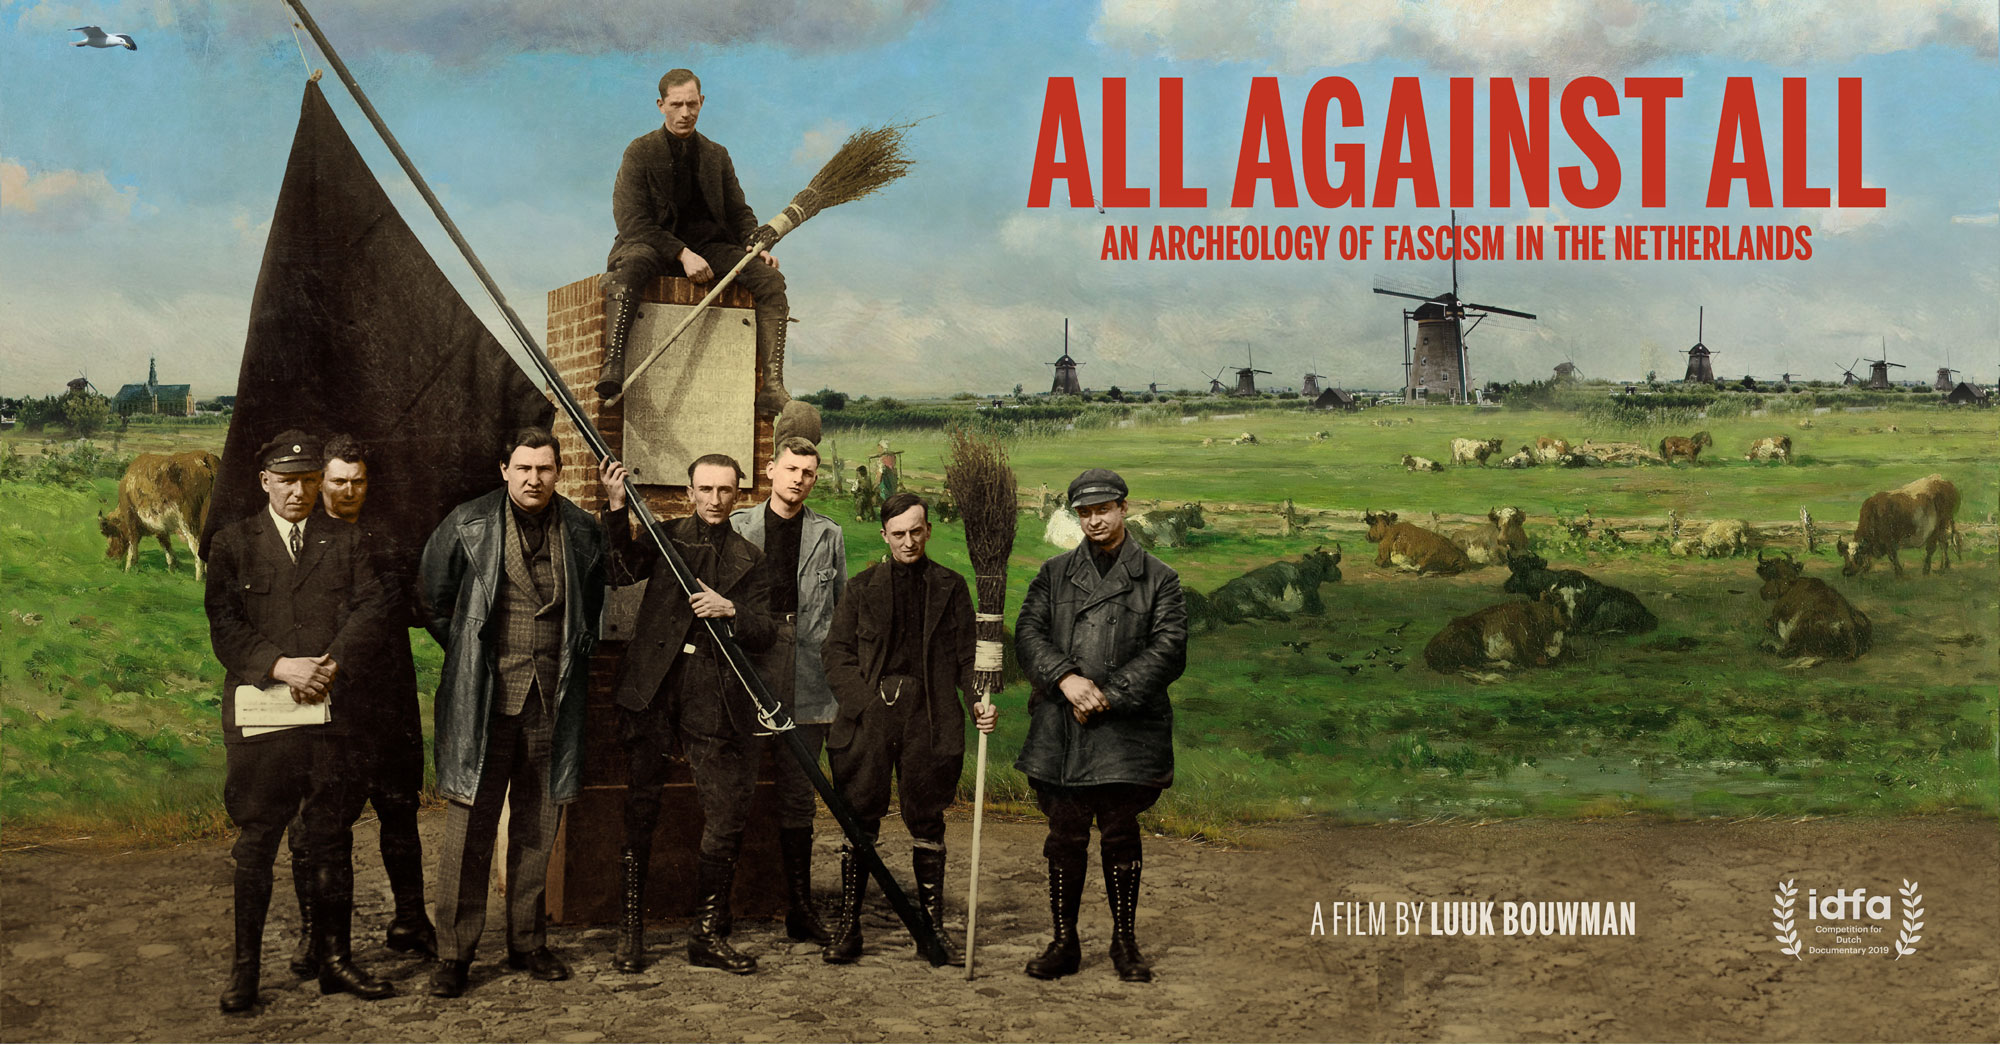 Filmposter of All Against All - members of a fascist organisation situated in a painting of a romantic dutch scene.